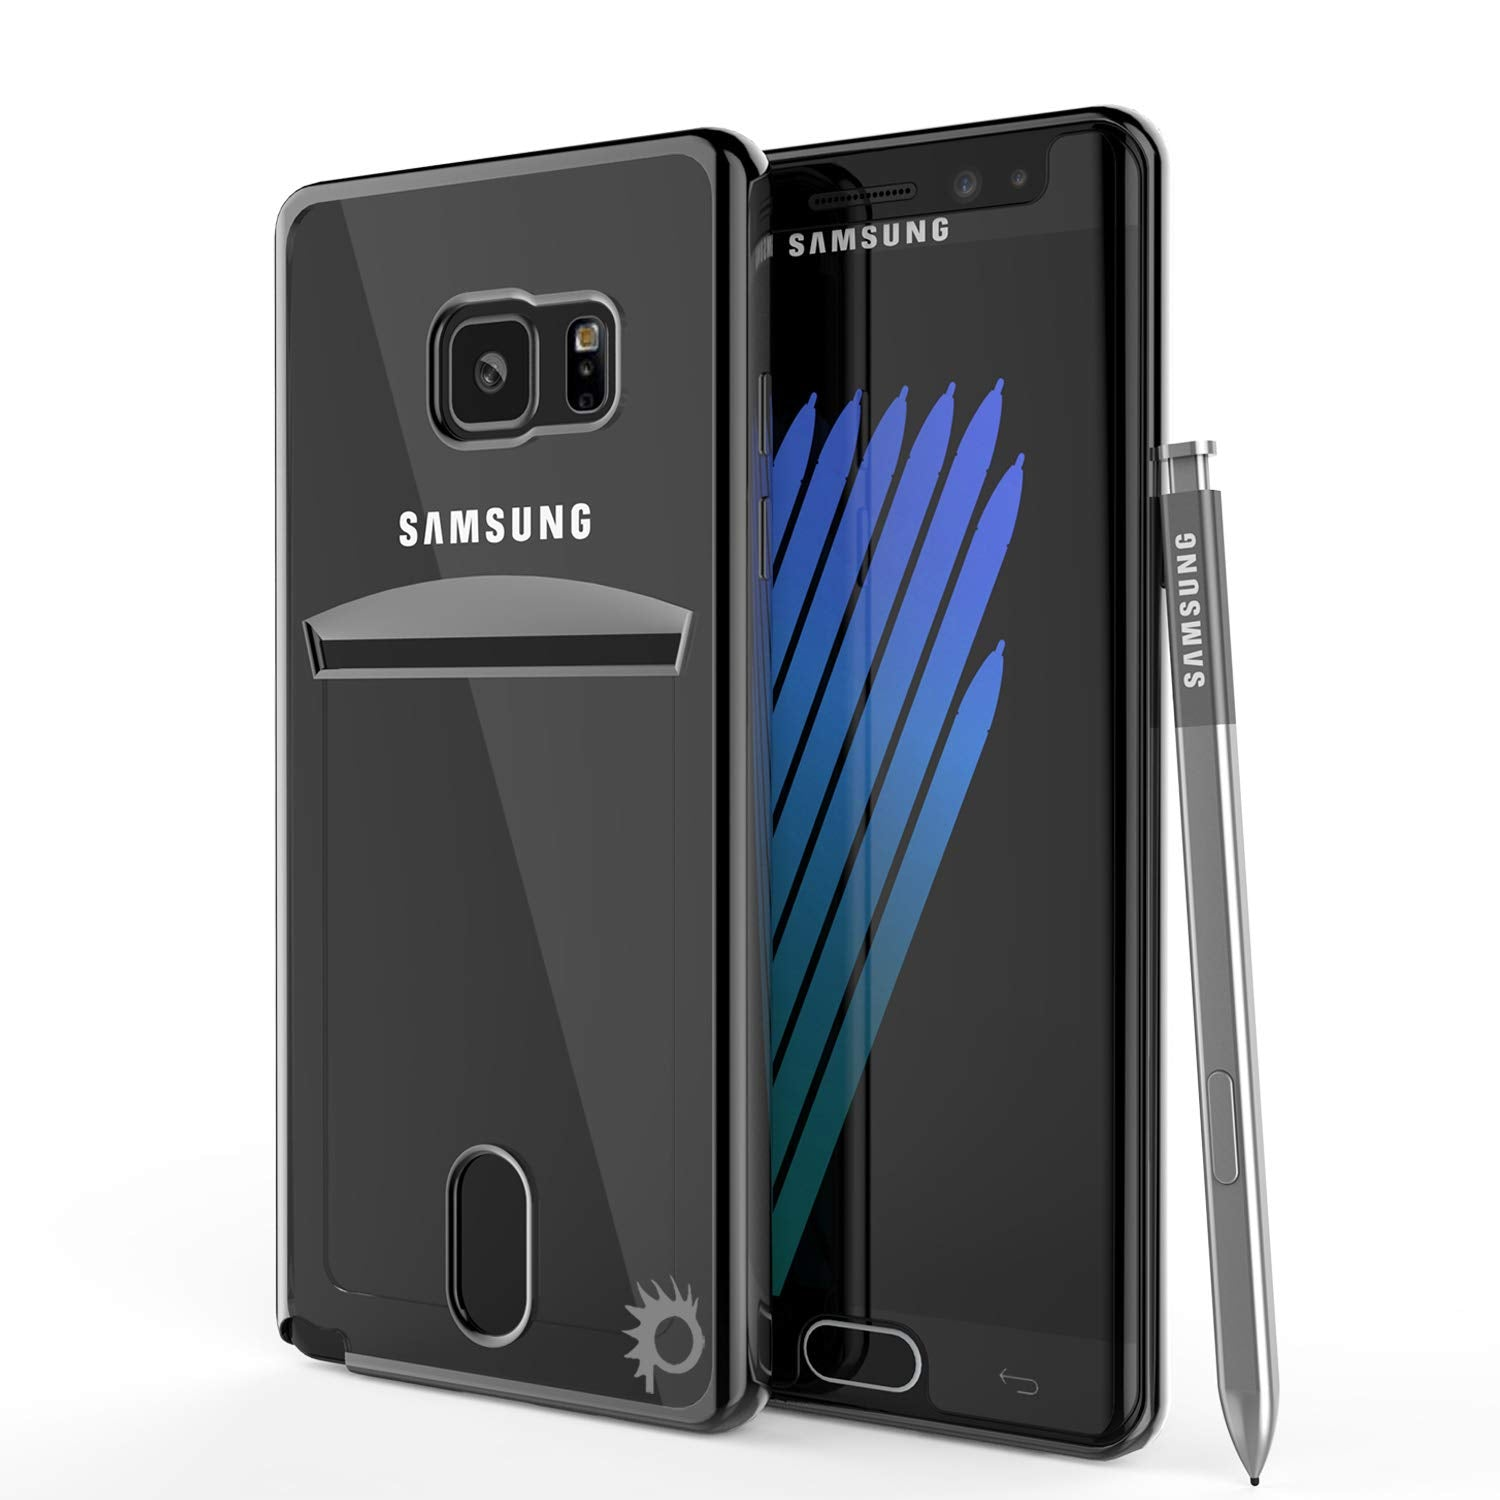 Galaxy Note FE Case, PUNKCASE® LUCID Black Series | Card Slot | SHIELD Screen Protector | Ultra fit